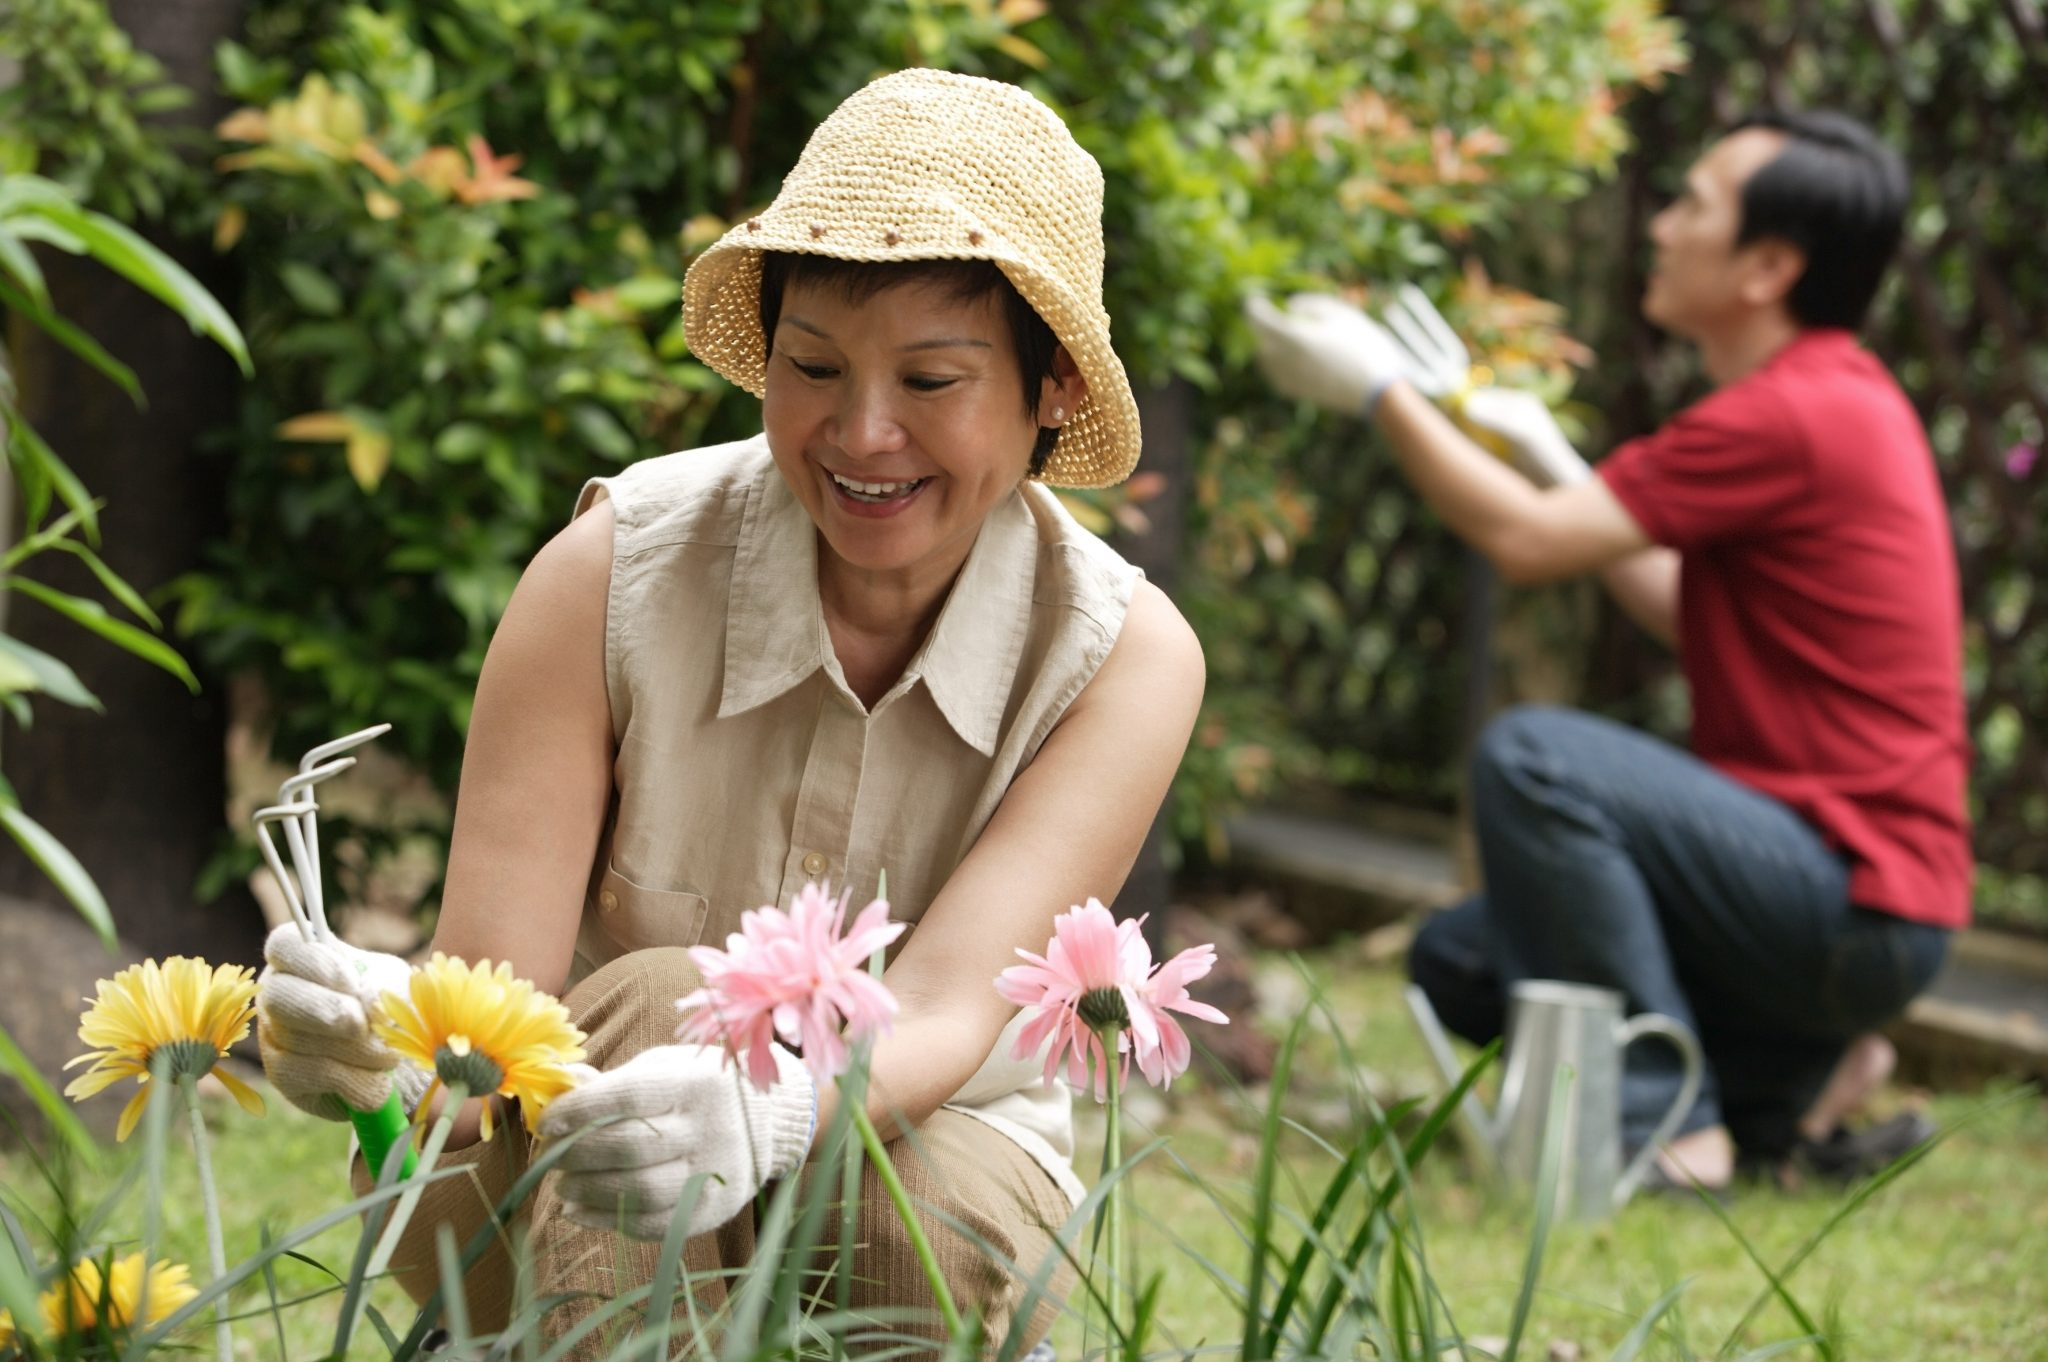 An Asian couple gardening together